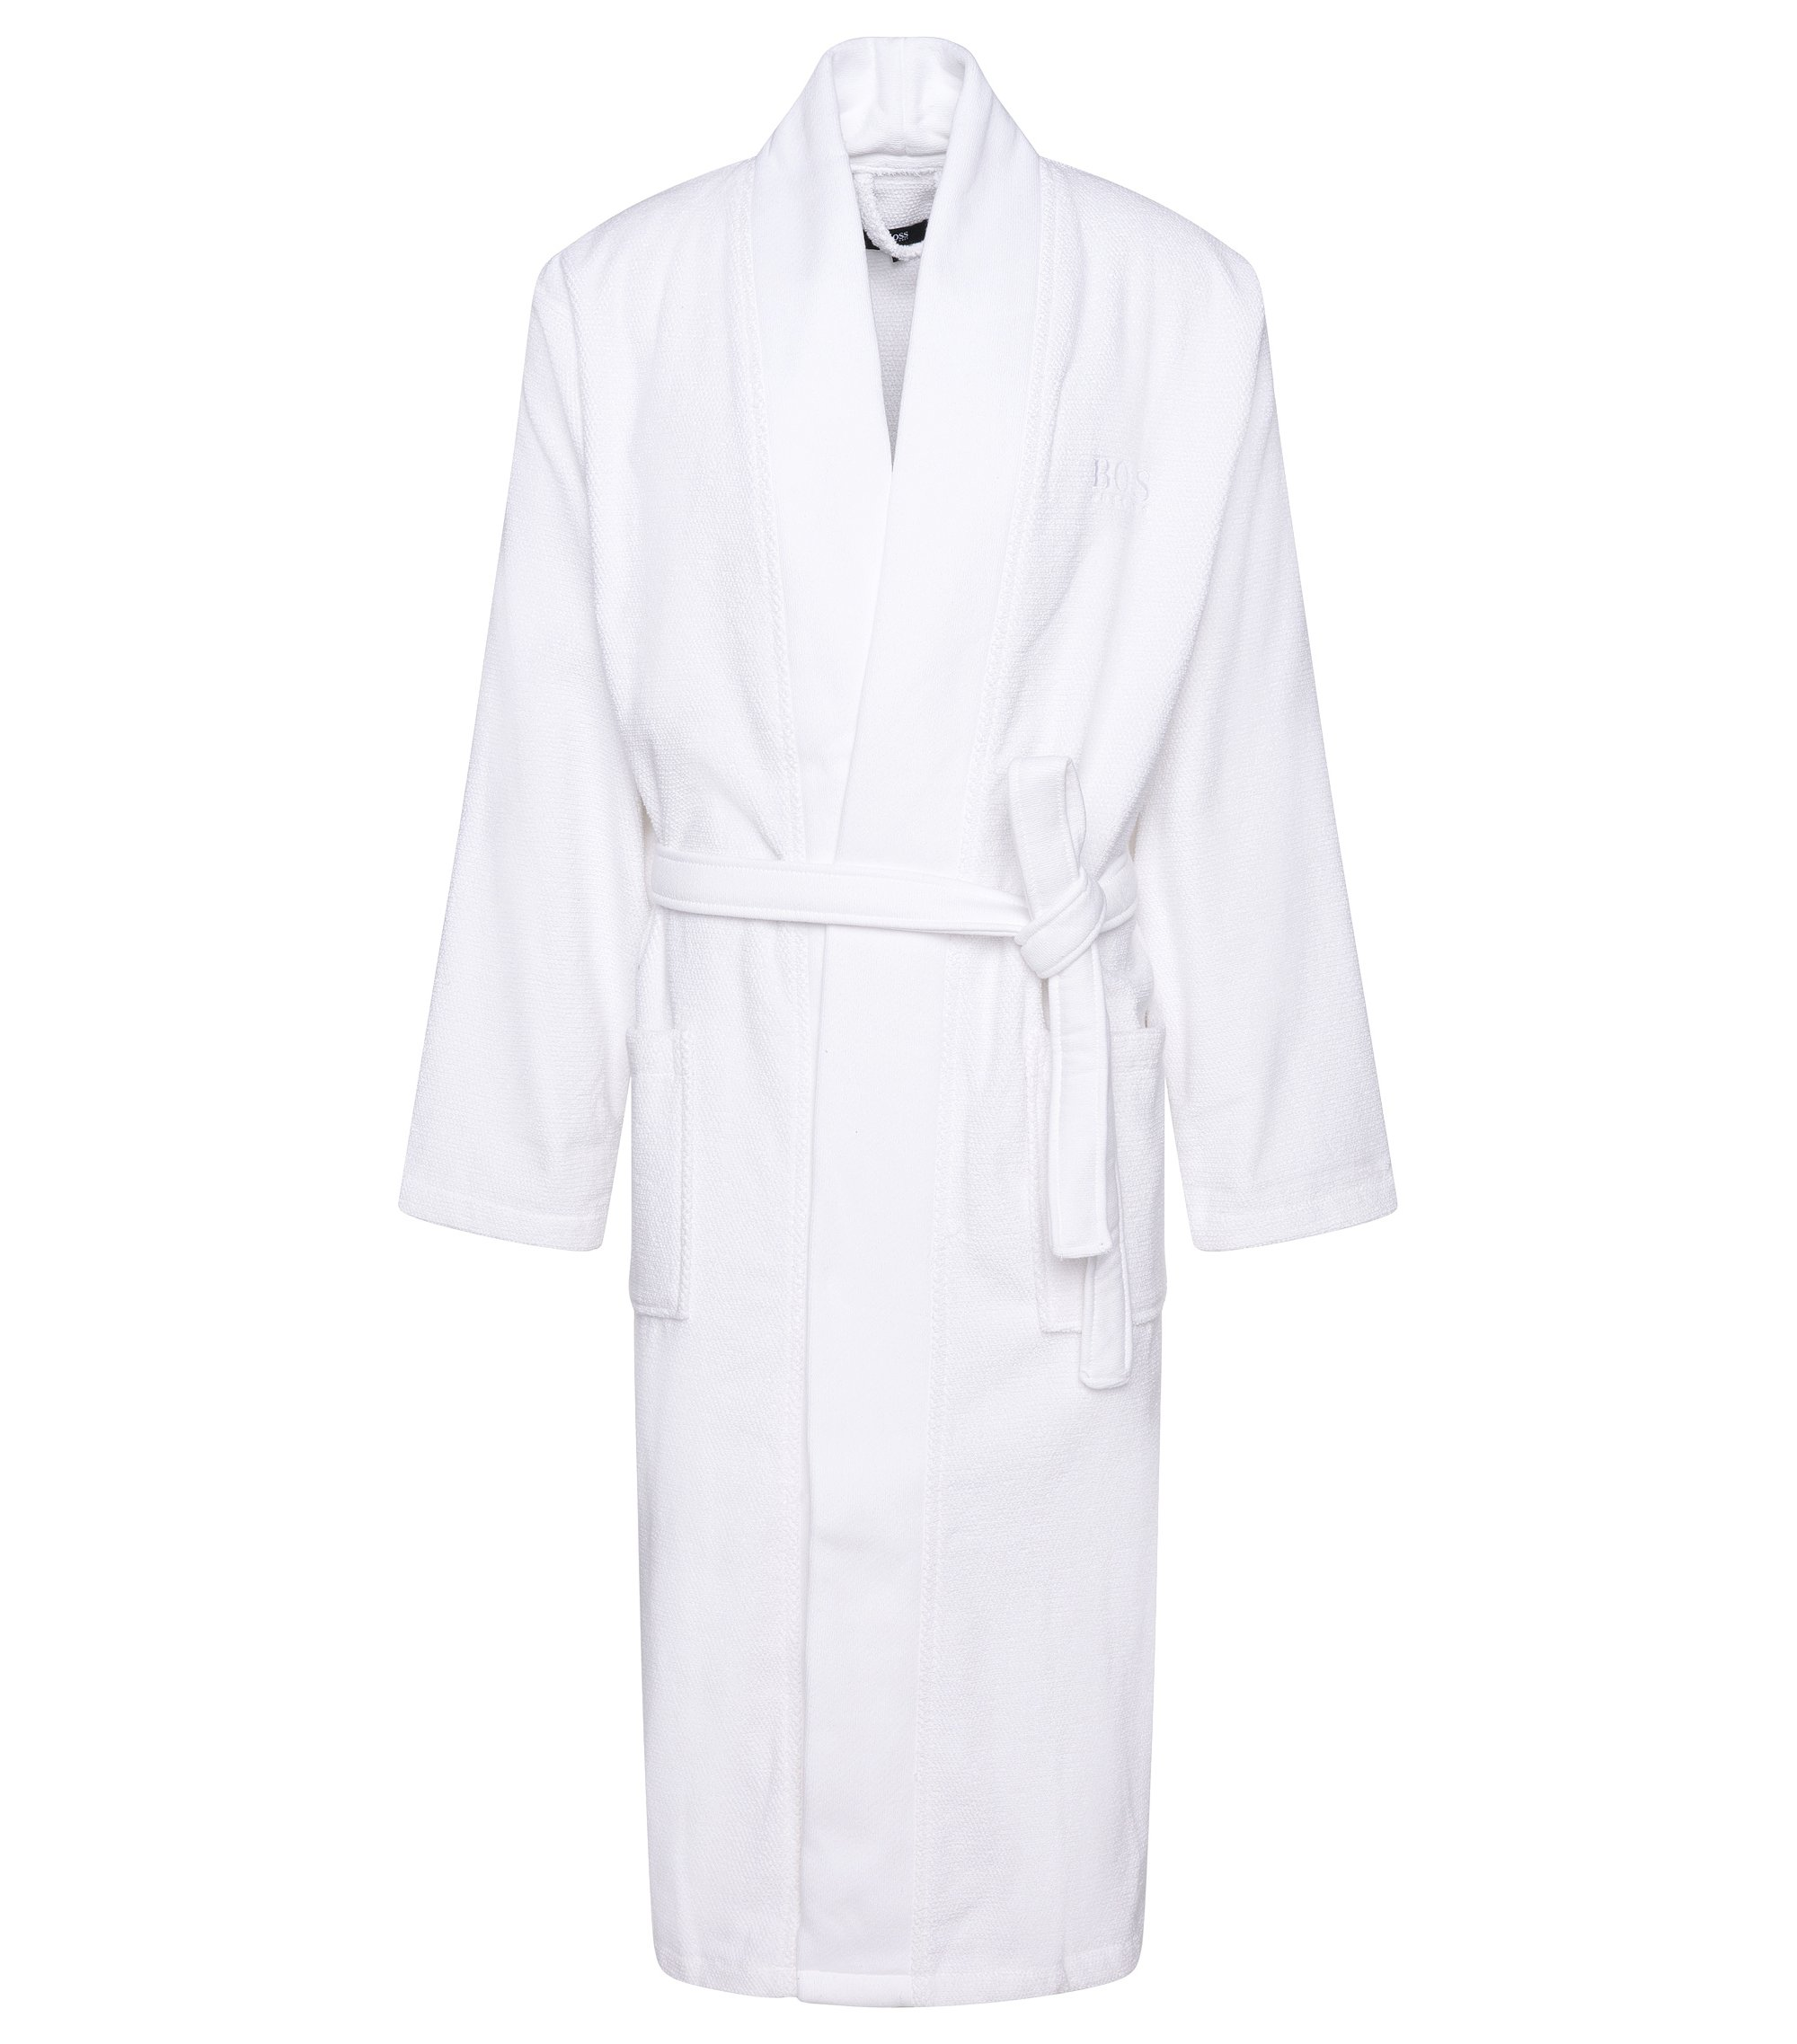 Kimono-style bathrobe in combed Aegean cotton, White